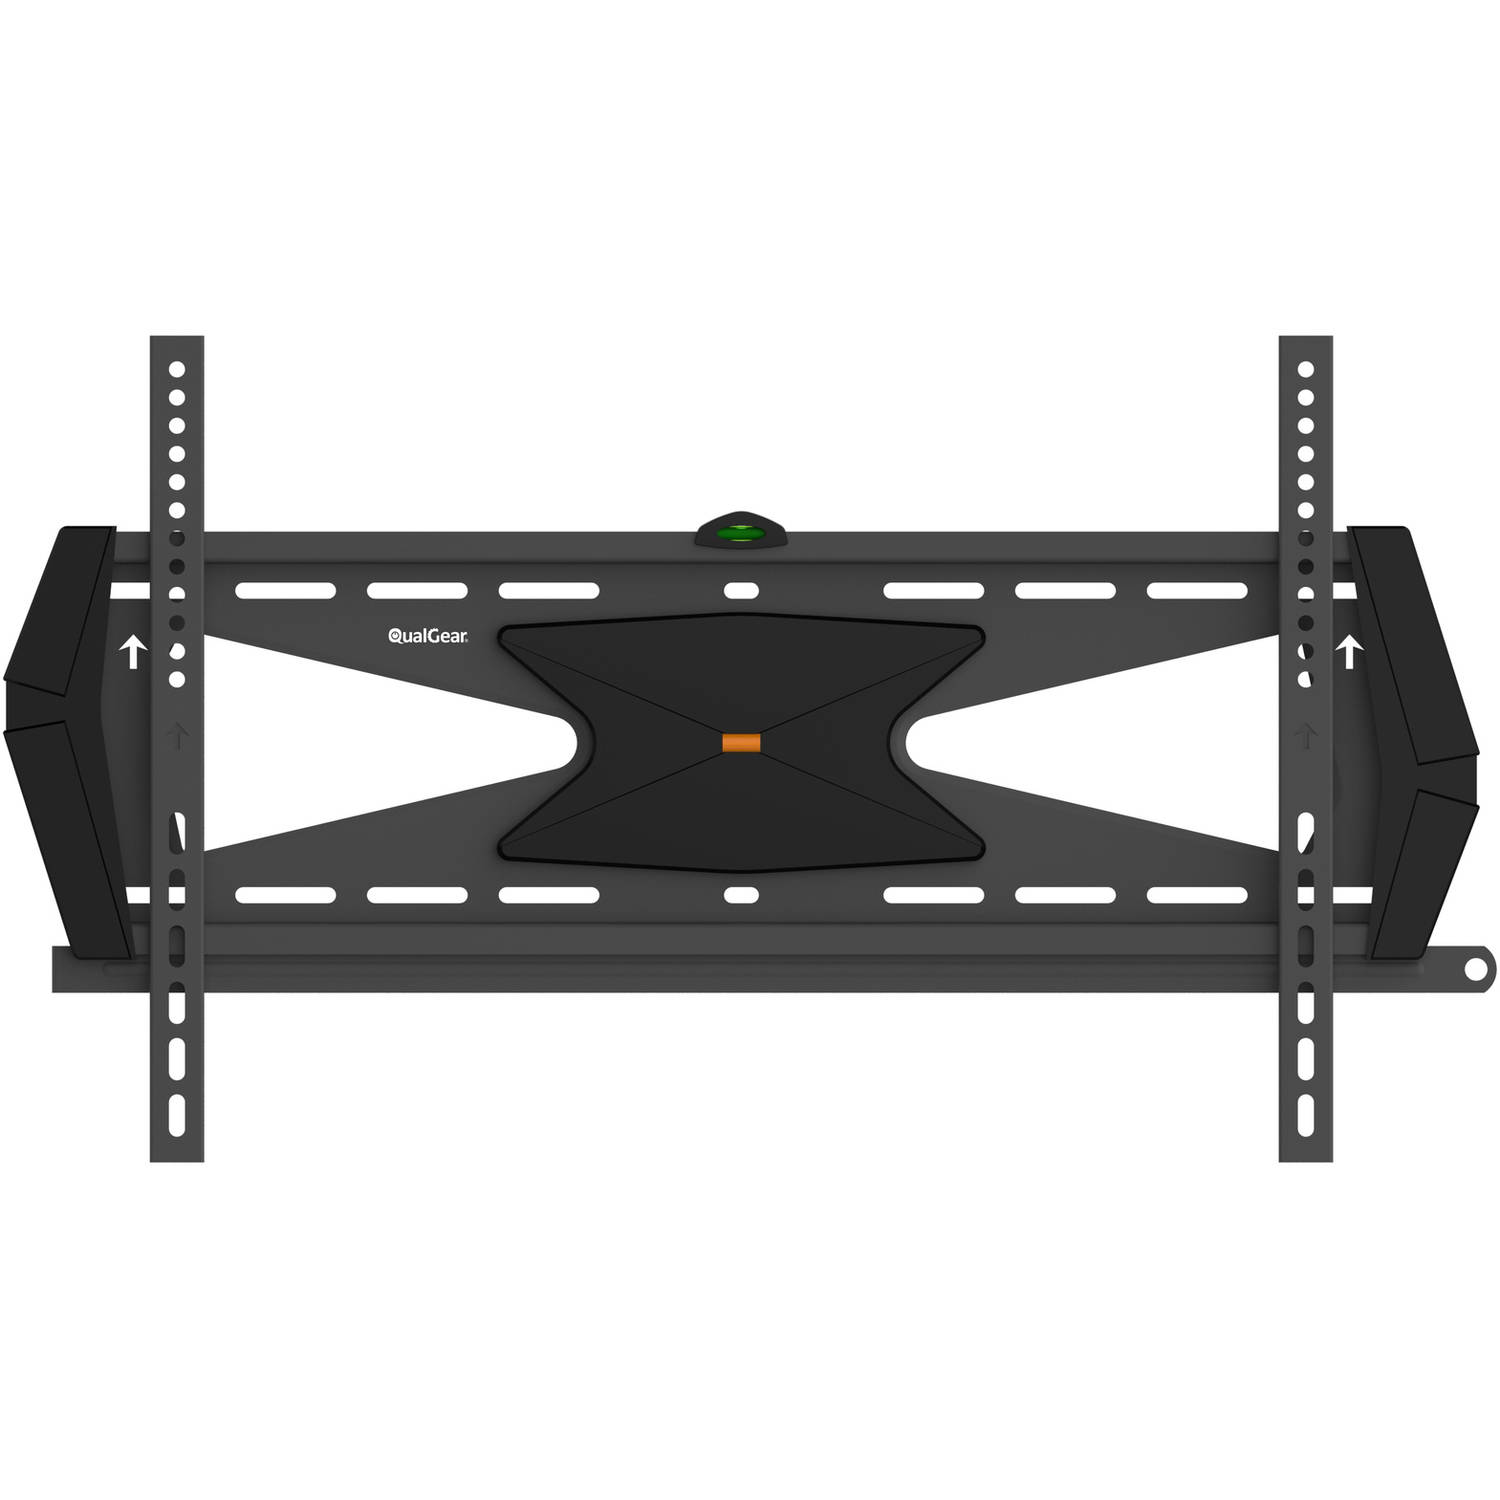 "QualGear Heavy-Duty Fixed TV Wall Mount for Most 37""-70"" Flat Panel and Curved TVs, Black"